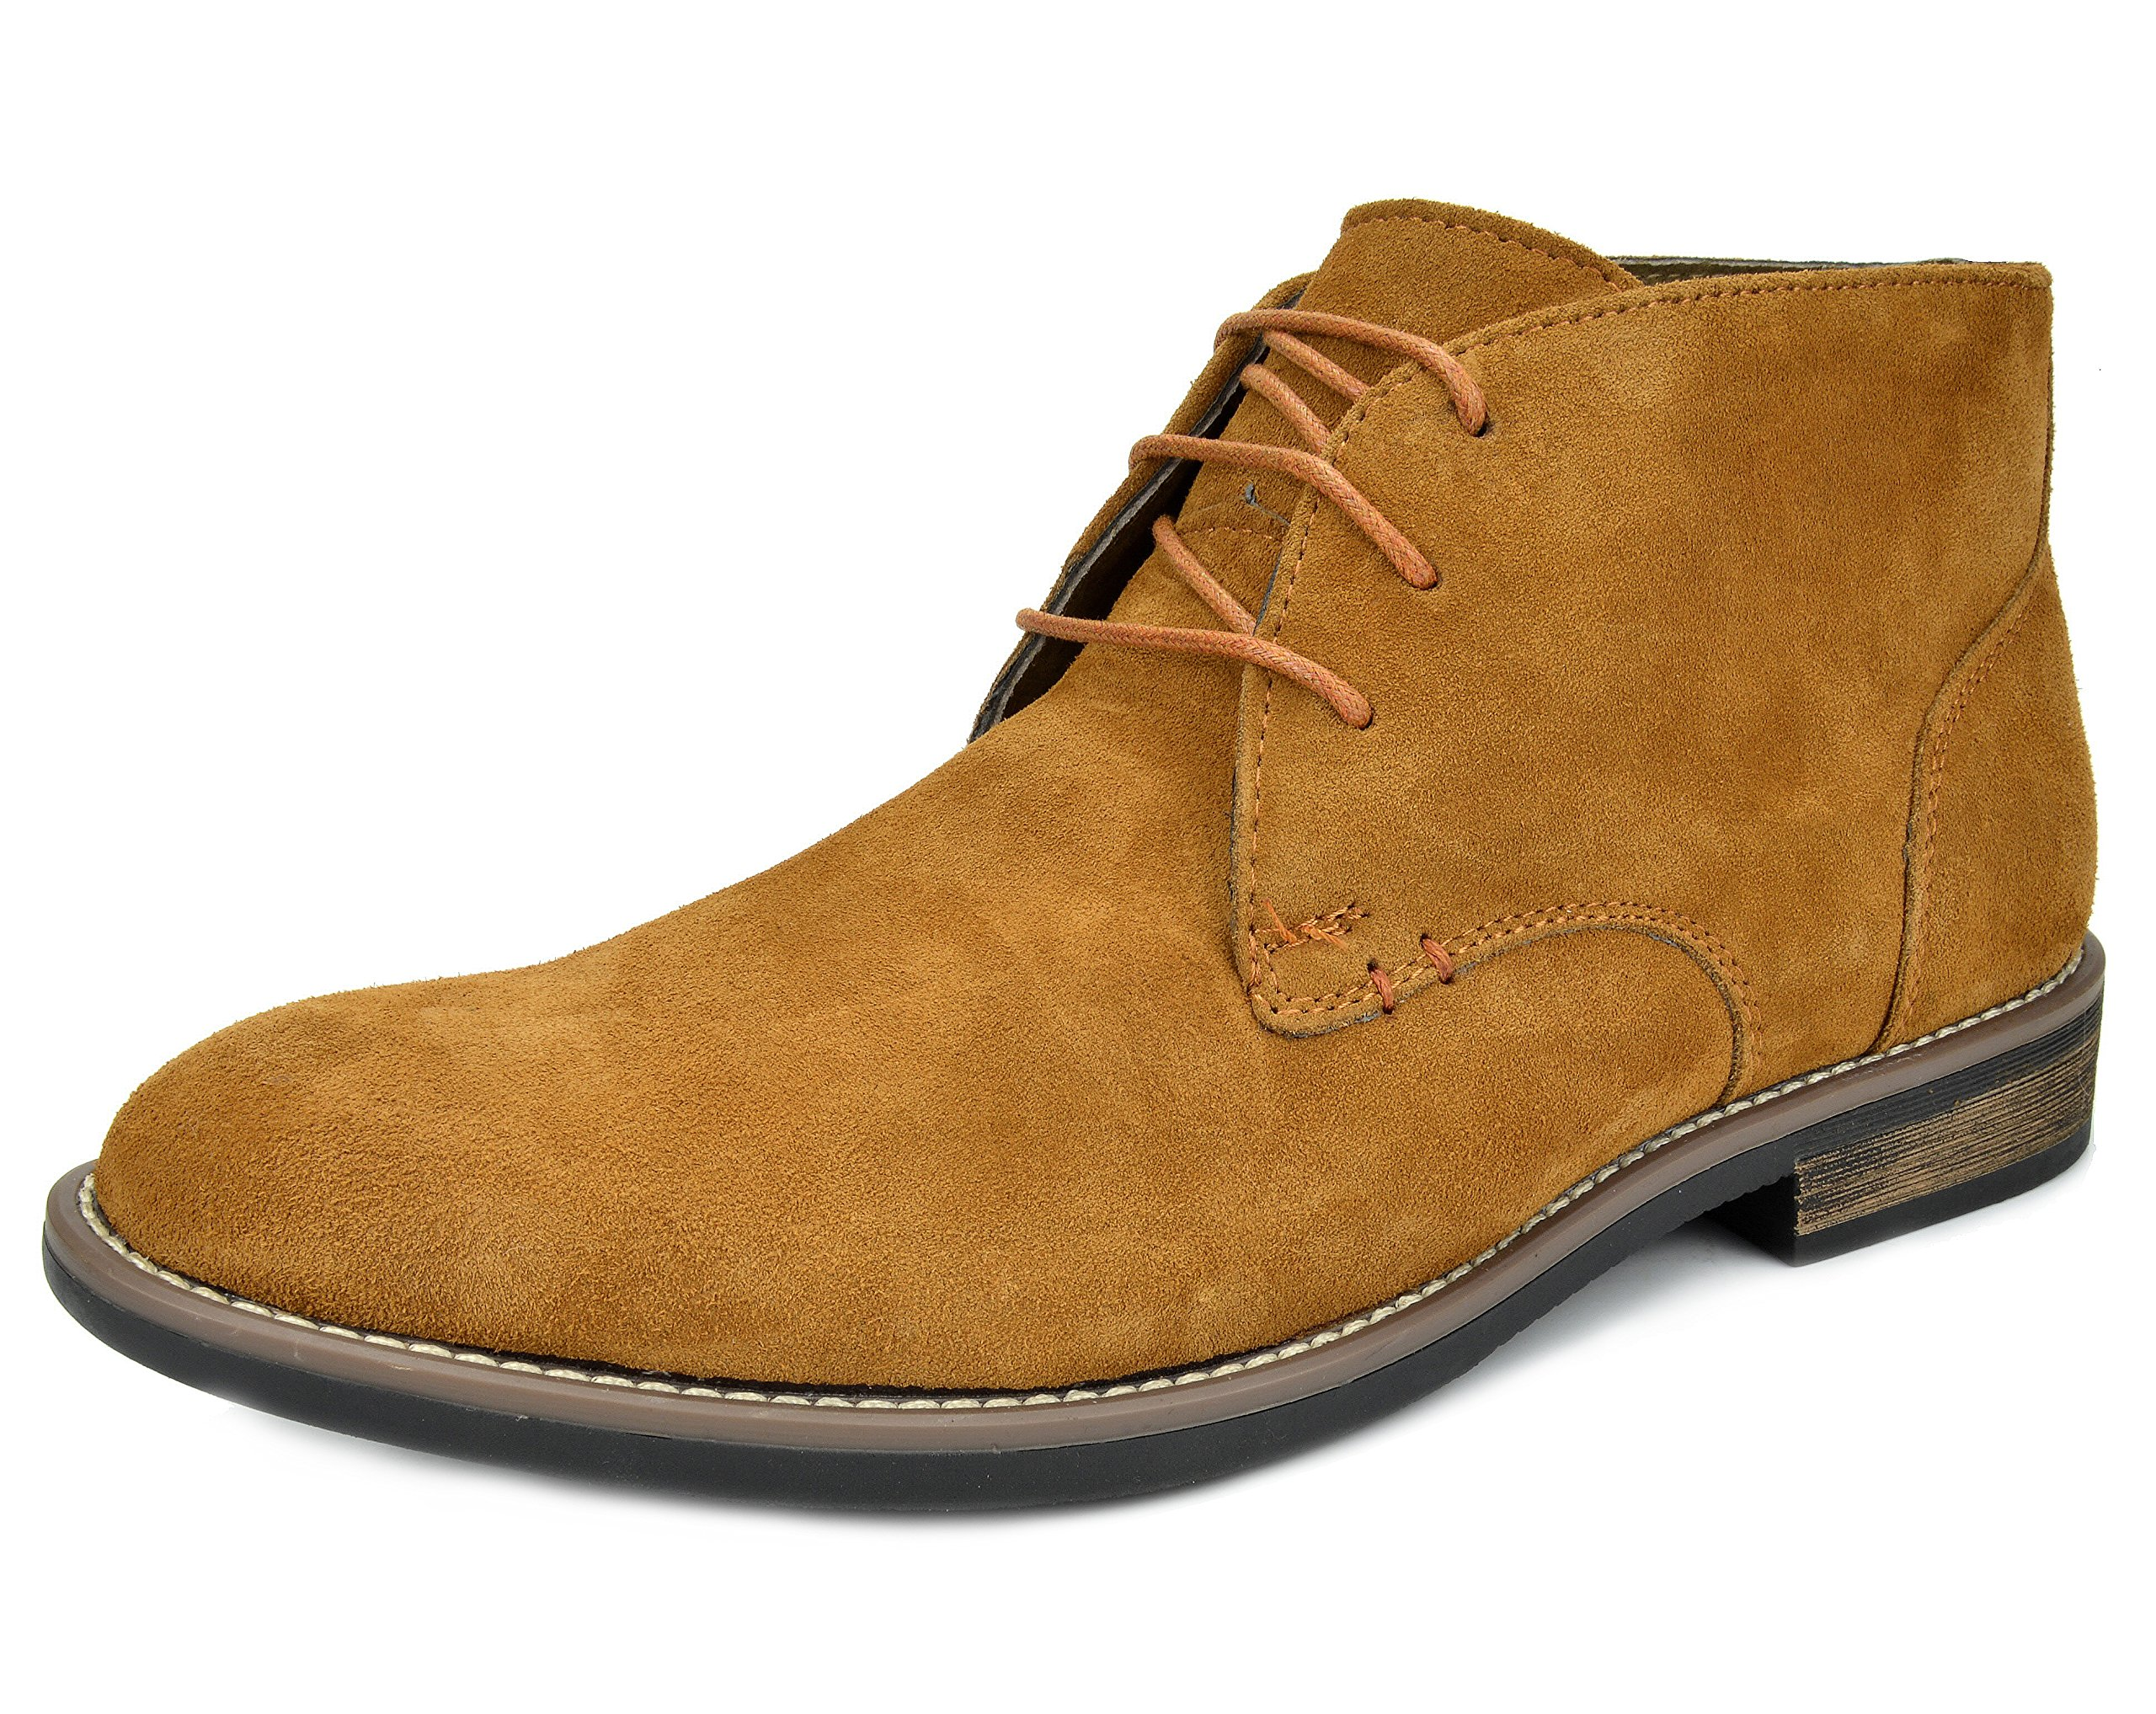 BRUNO MARC NEW YORK Bruno Marc Men's URBAN-01 Camel Suede Leather Lace Up Oxfords Desert Boots - 10 M US